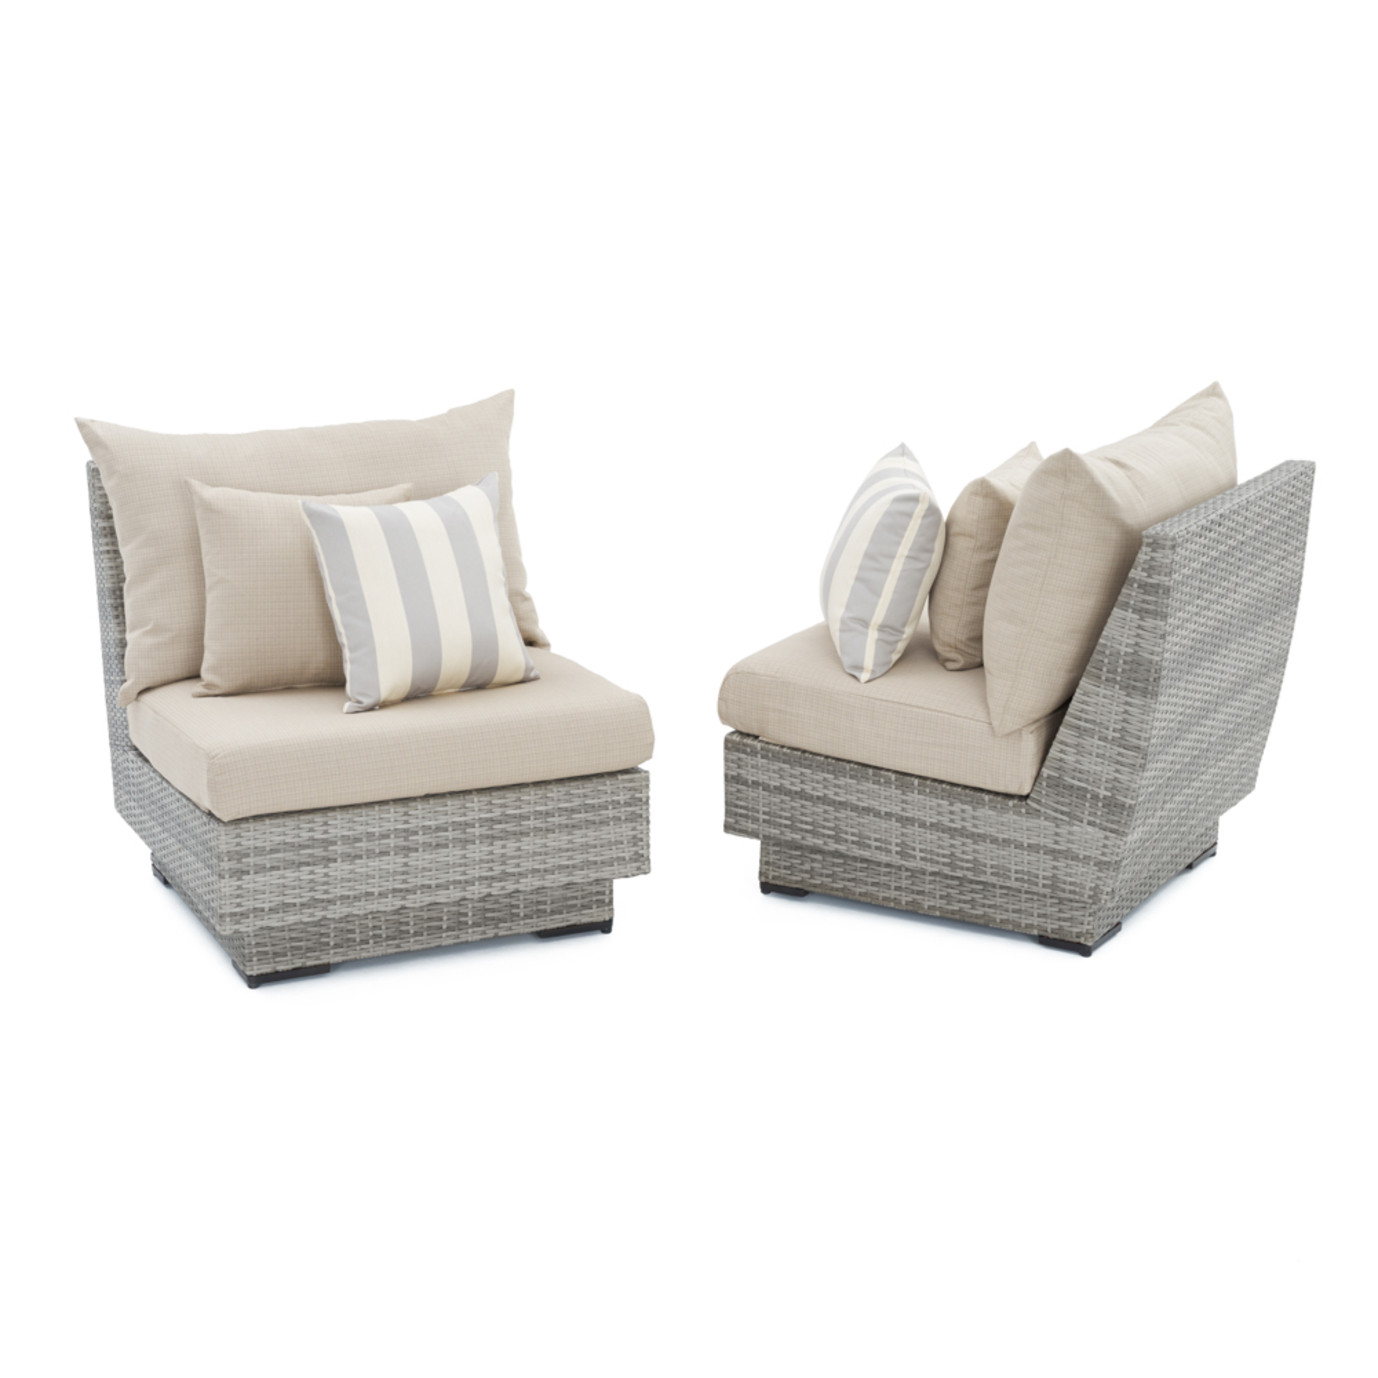 Cannes™ Armless Chairs - Slate Grey